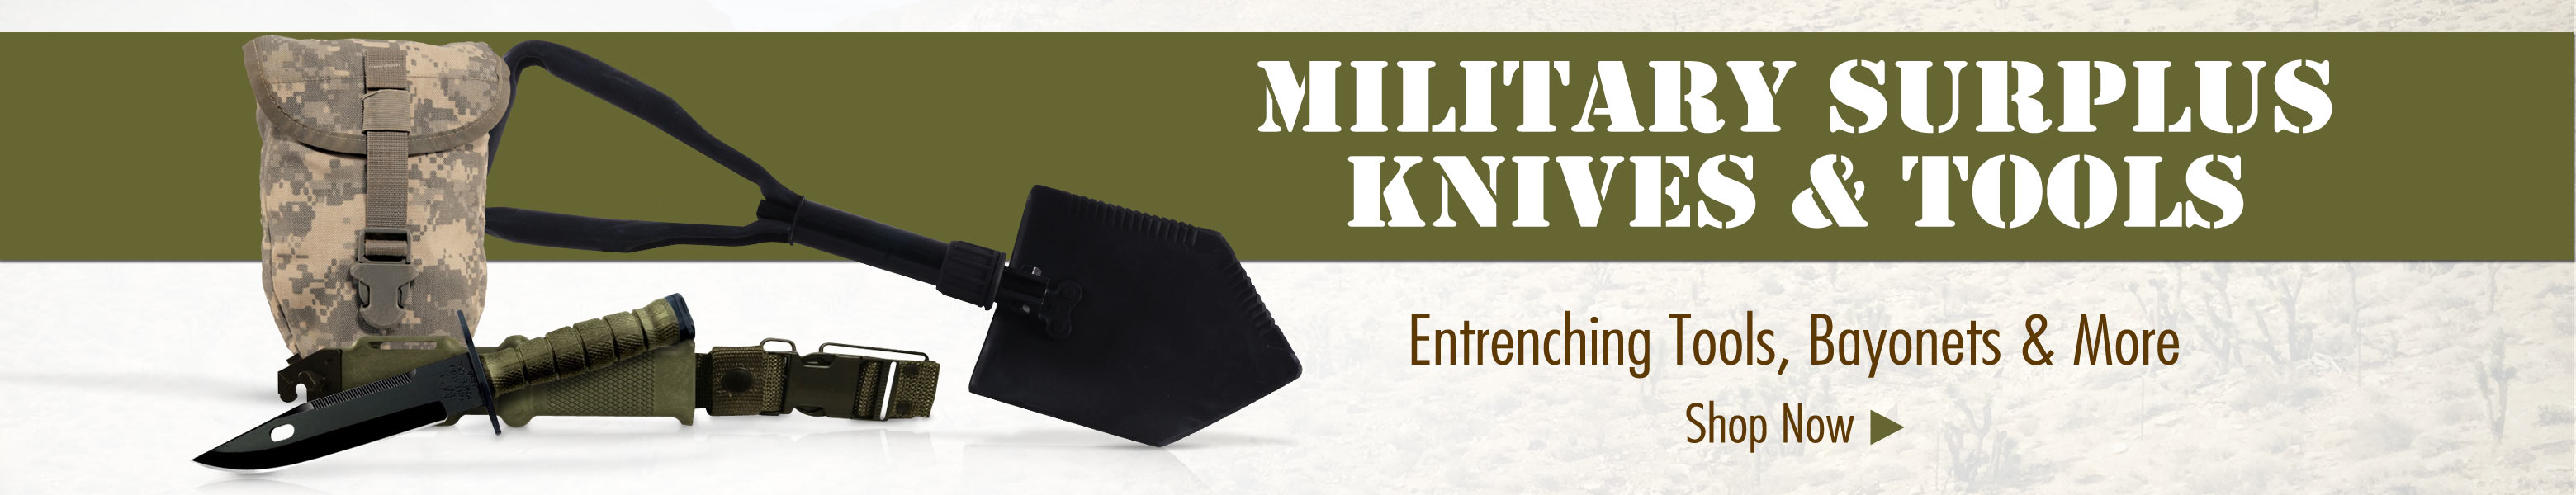 Military Surplus Knives & Tools